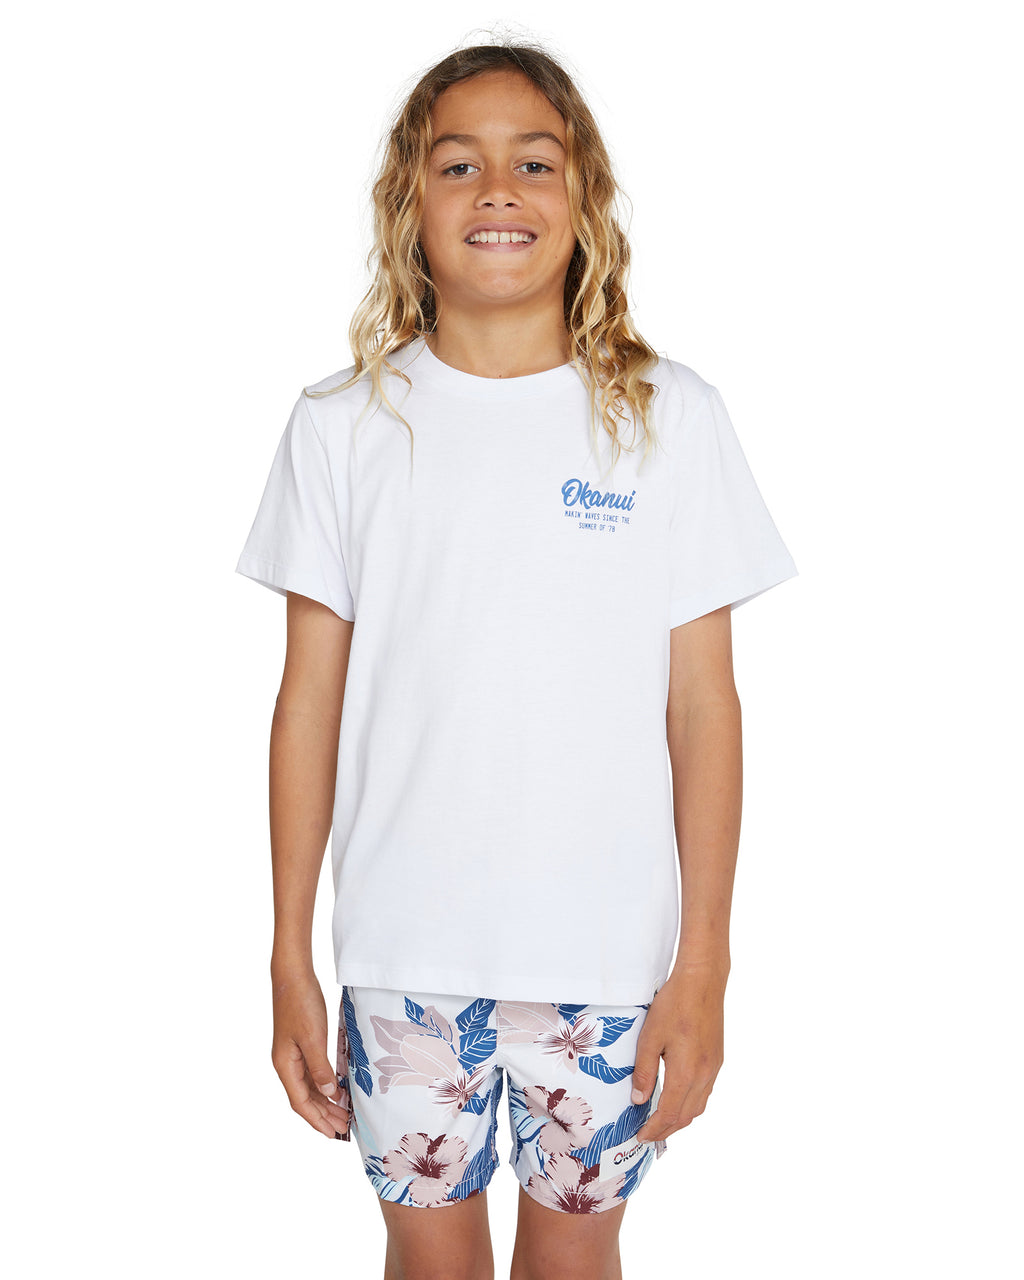 Kids T'S - Ocean Rhythm - White